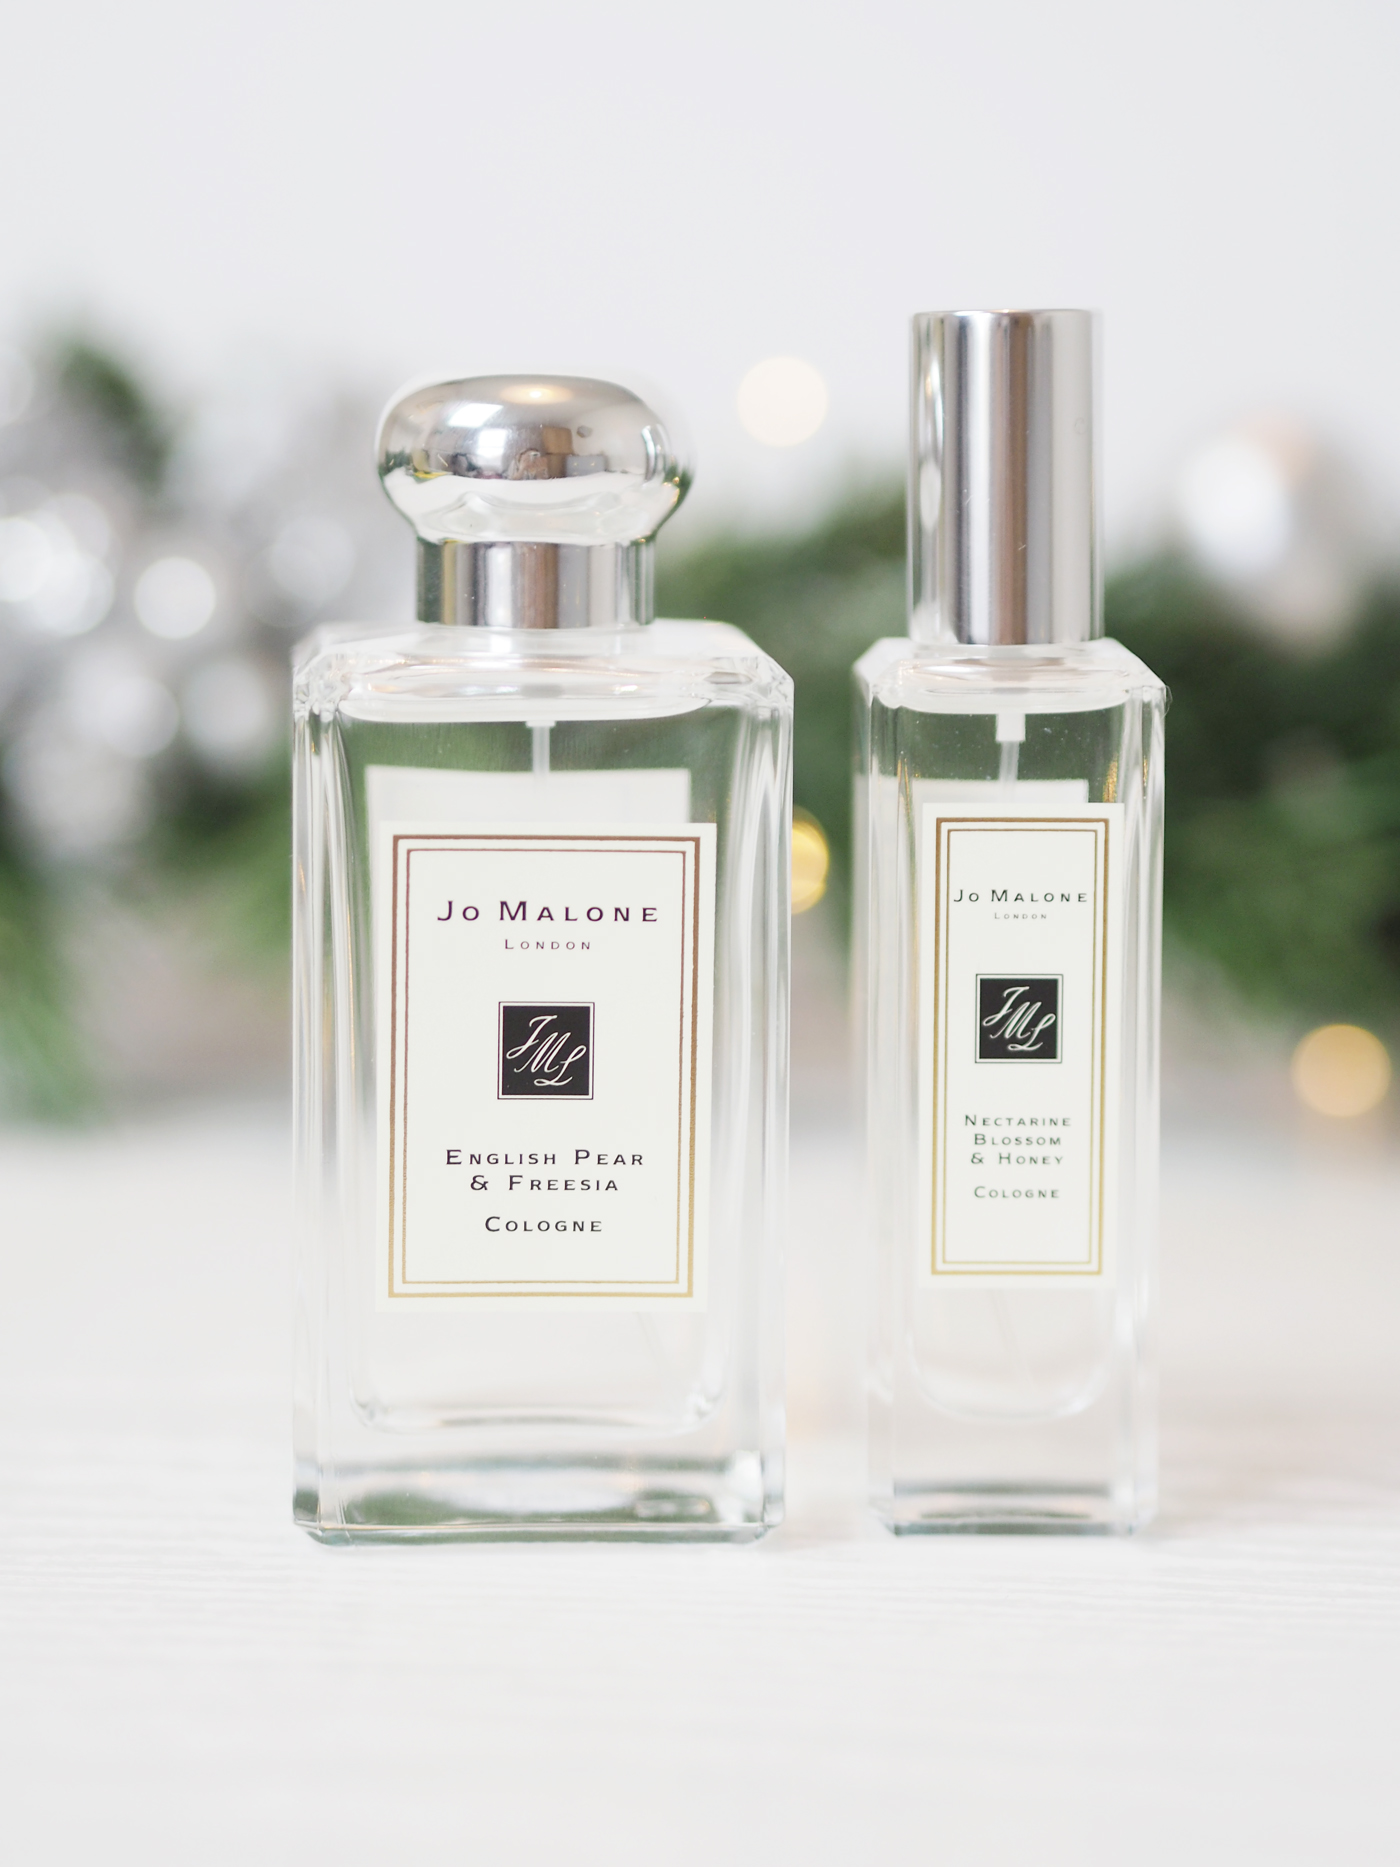 Most Por Jo Malone Candles Image Antique And Candle